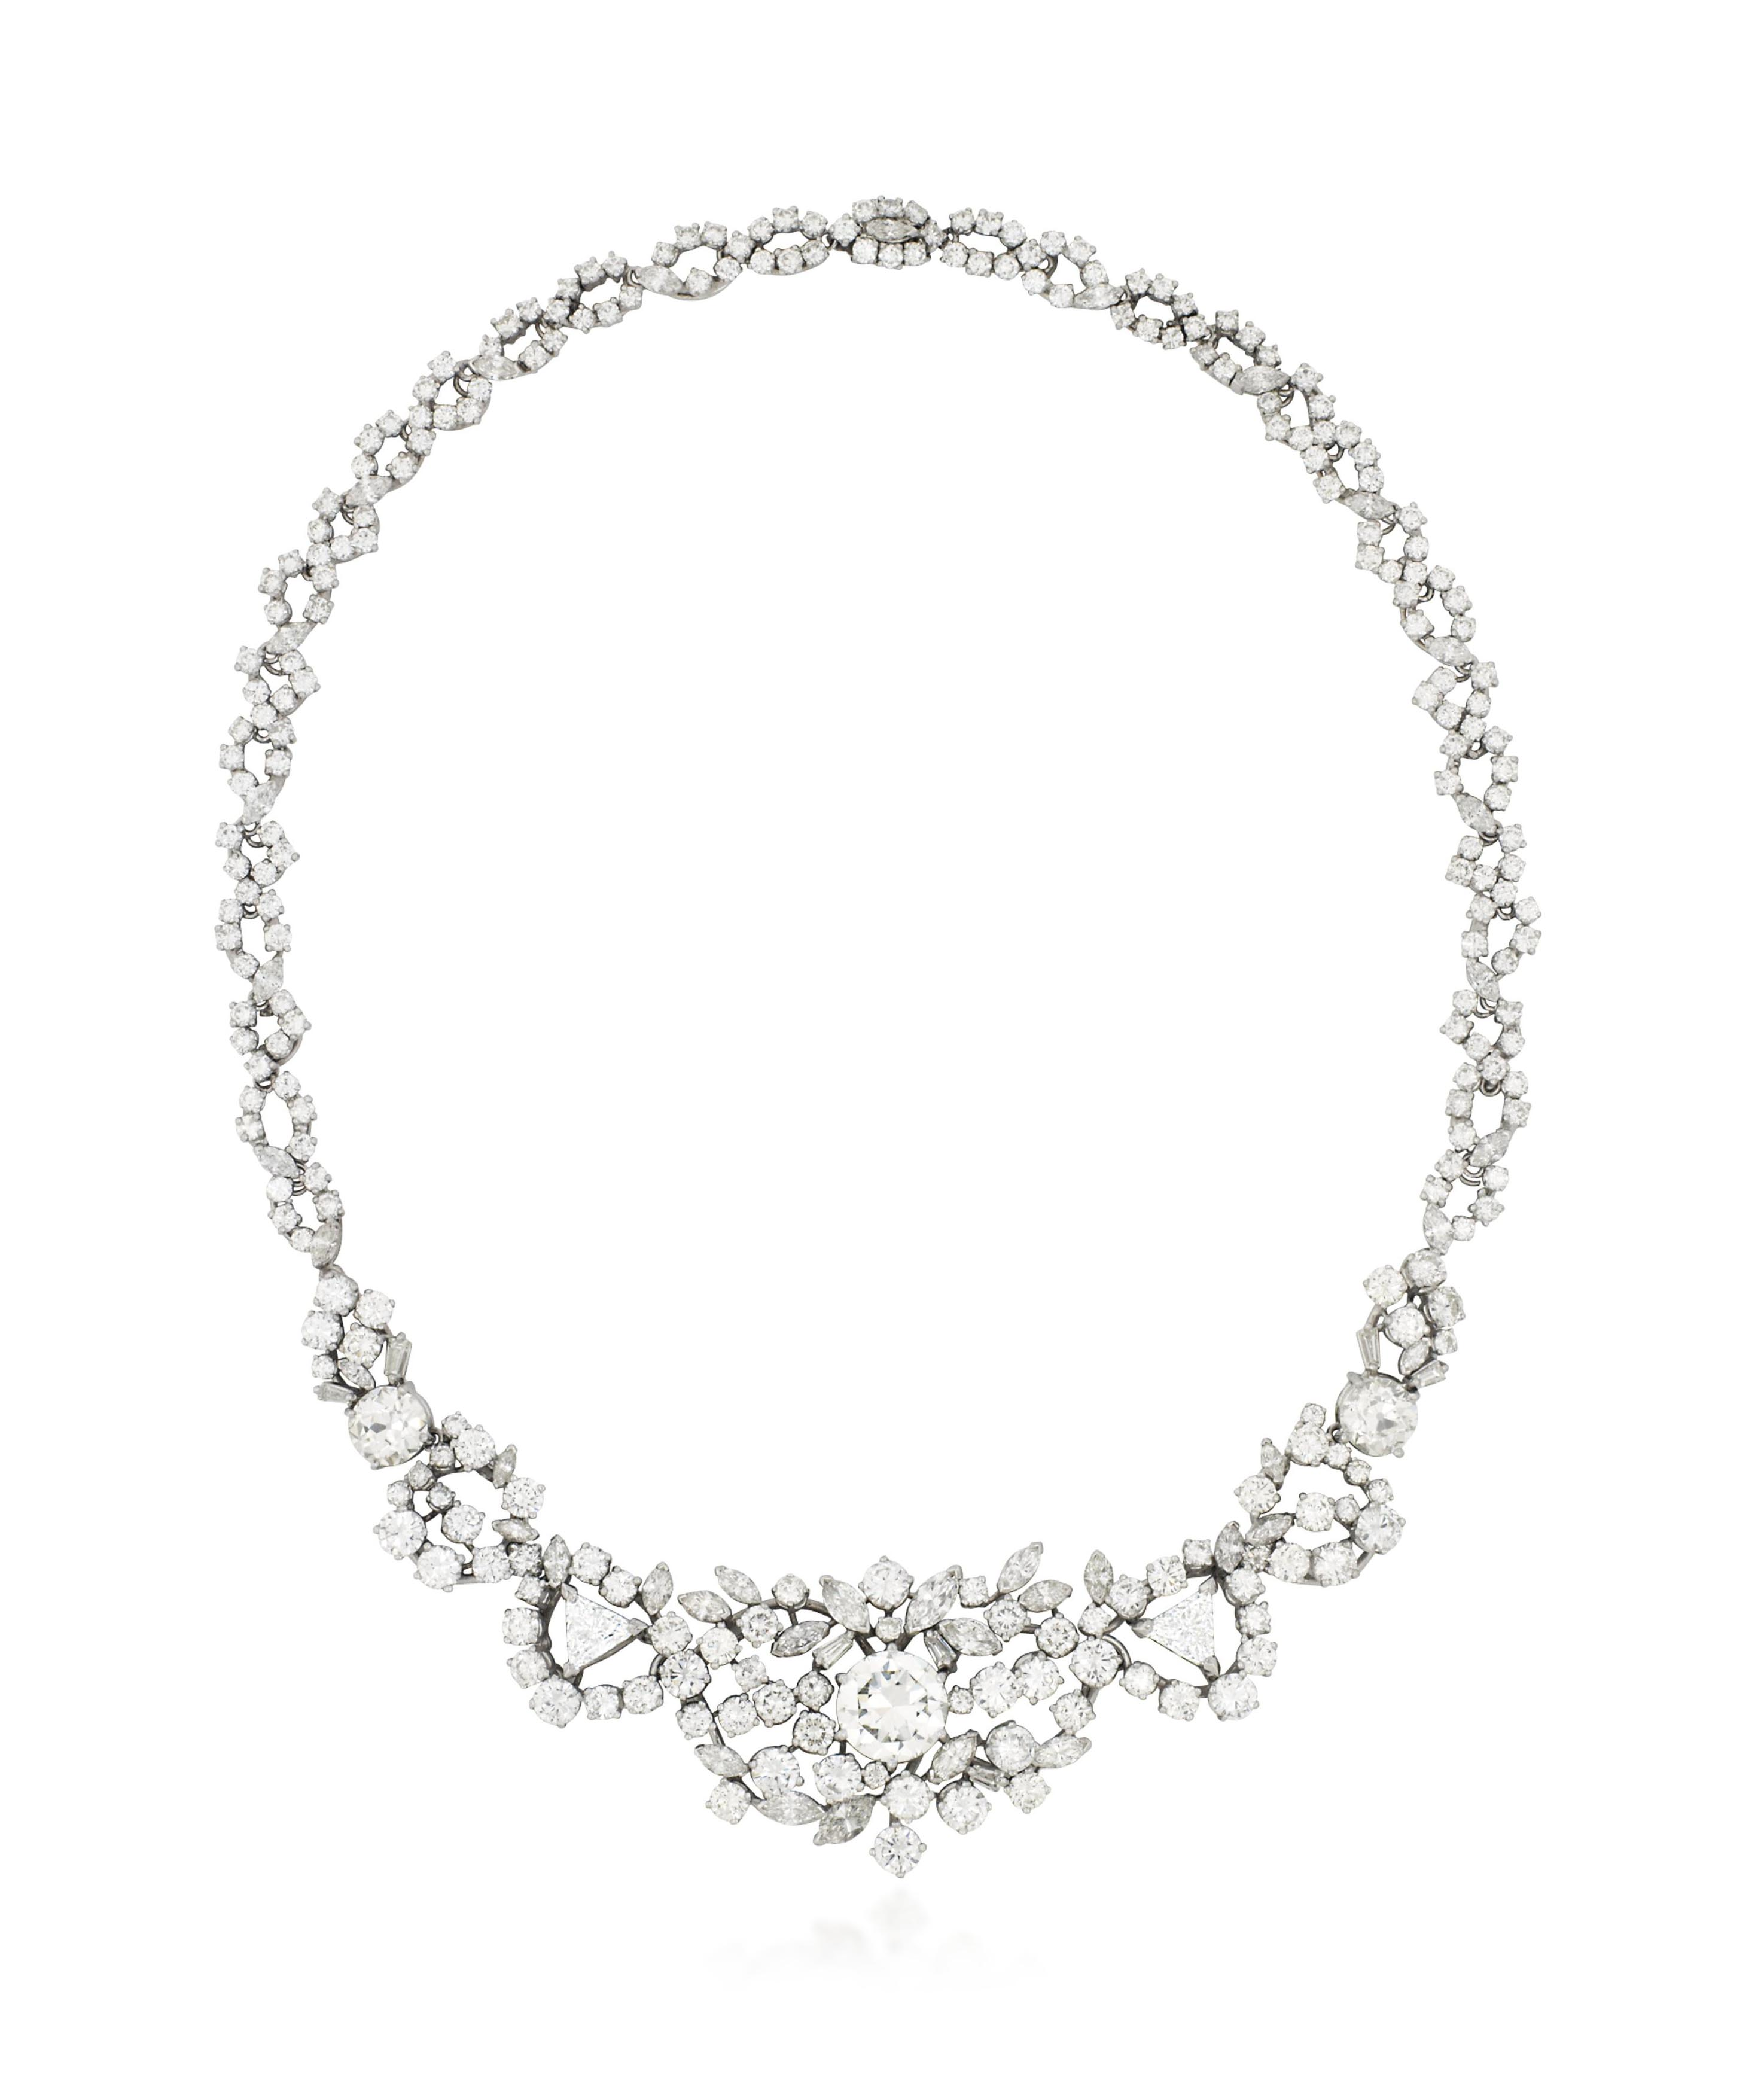 AN 18 CARAT WHITE GOLD AND DIAMOND NECKLACE, BY GARRARD & CO.